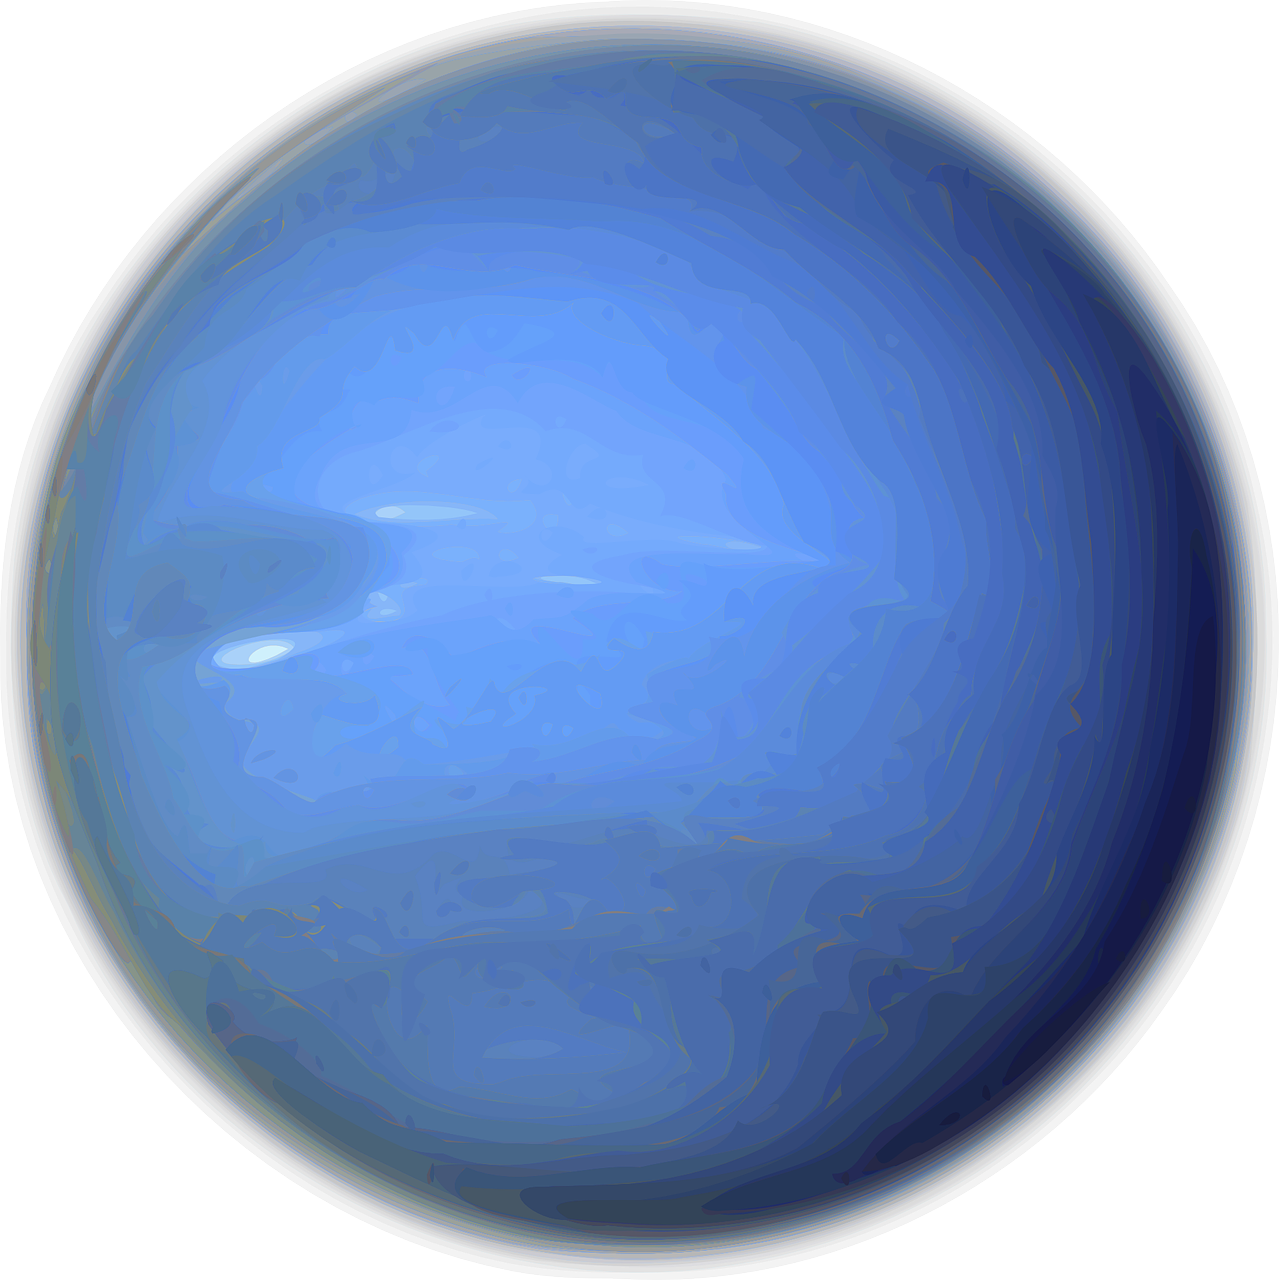 Image of Neptune - Moons